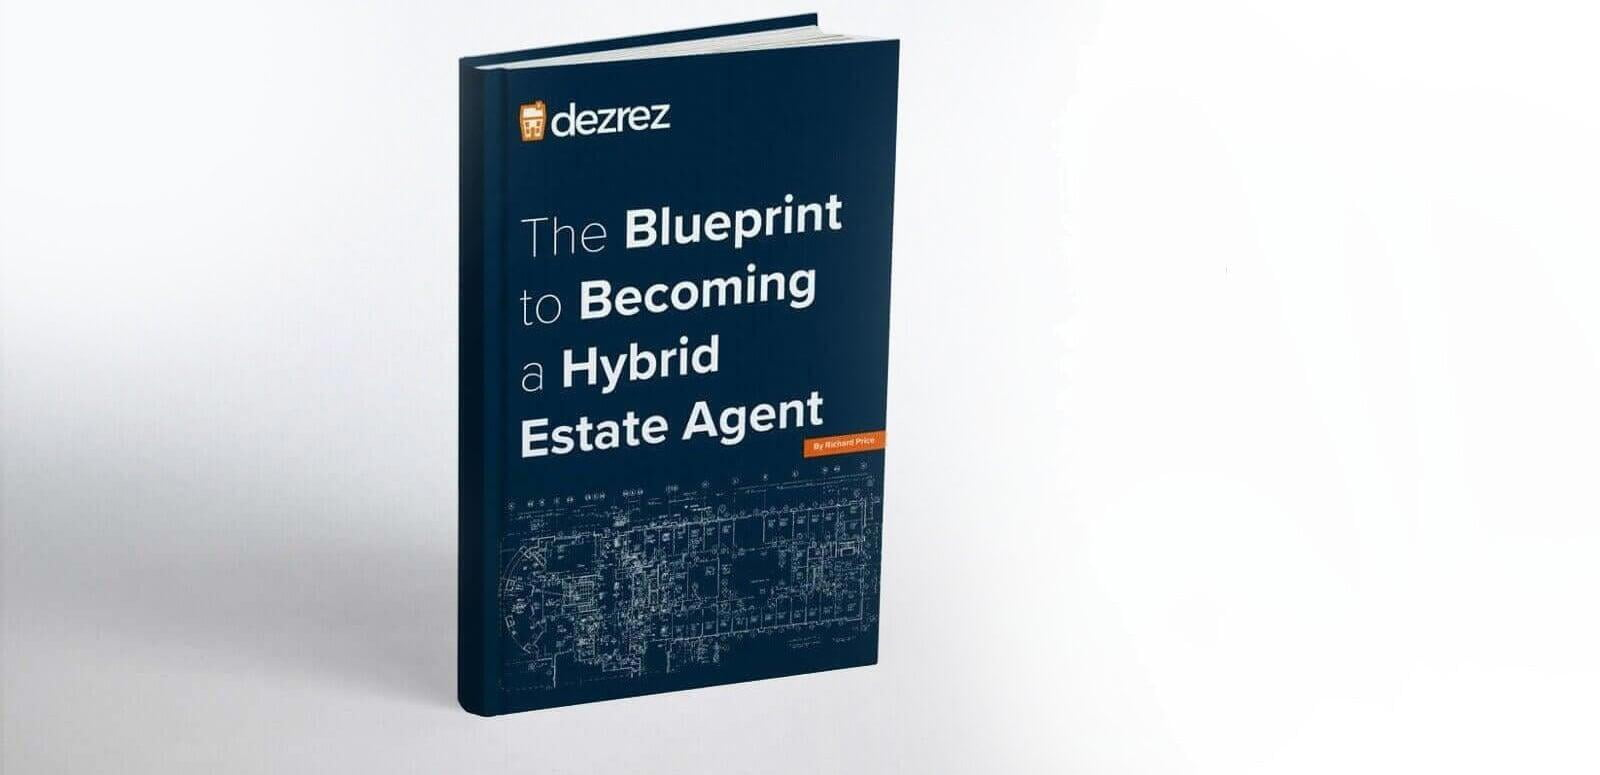 How to Become a Hybrid Estate Agent Ebook